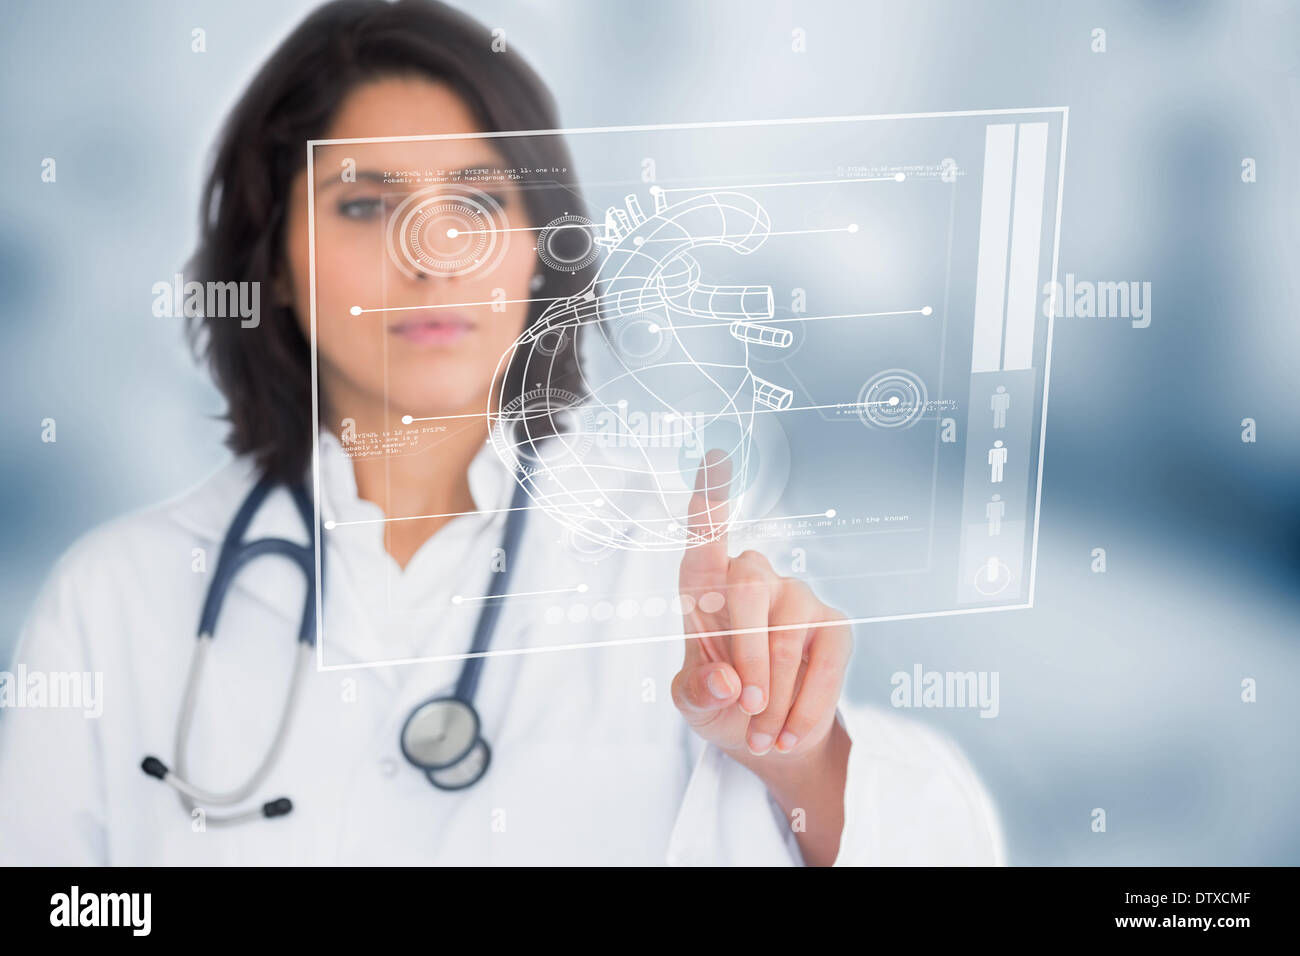 Calm doctor touching a medical interface - Stock Image